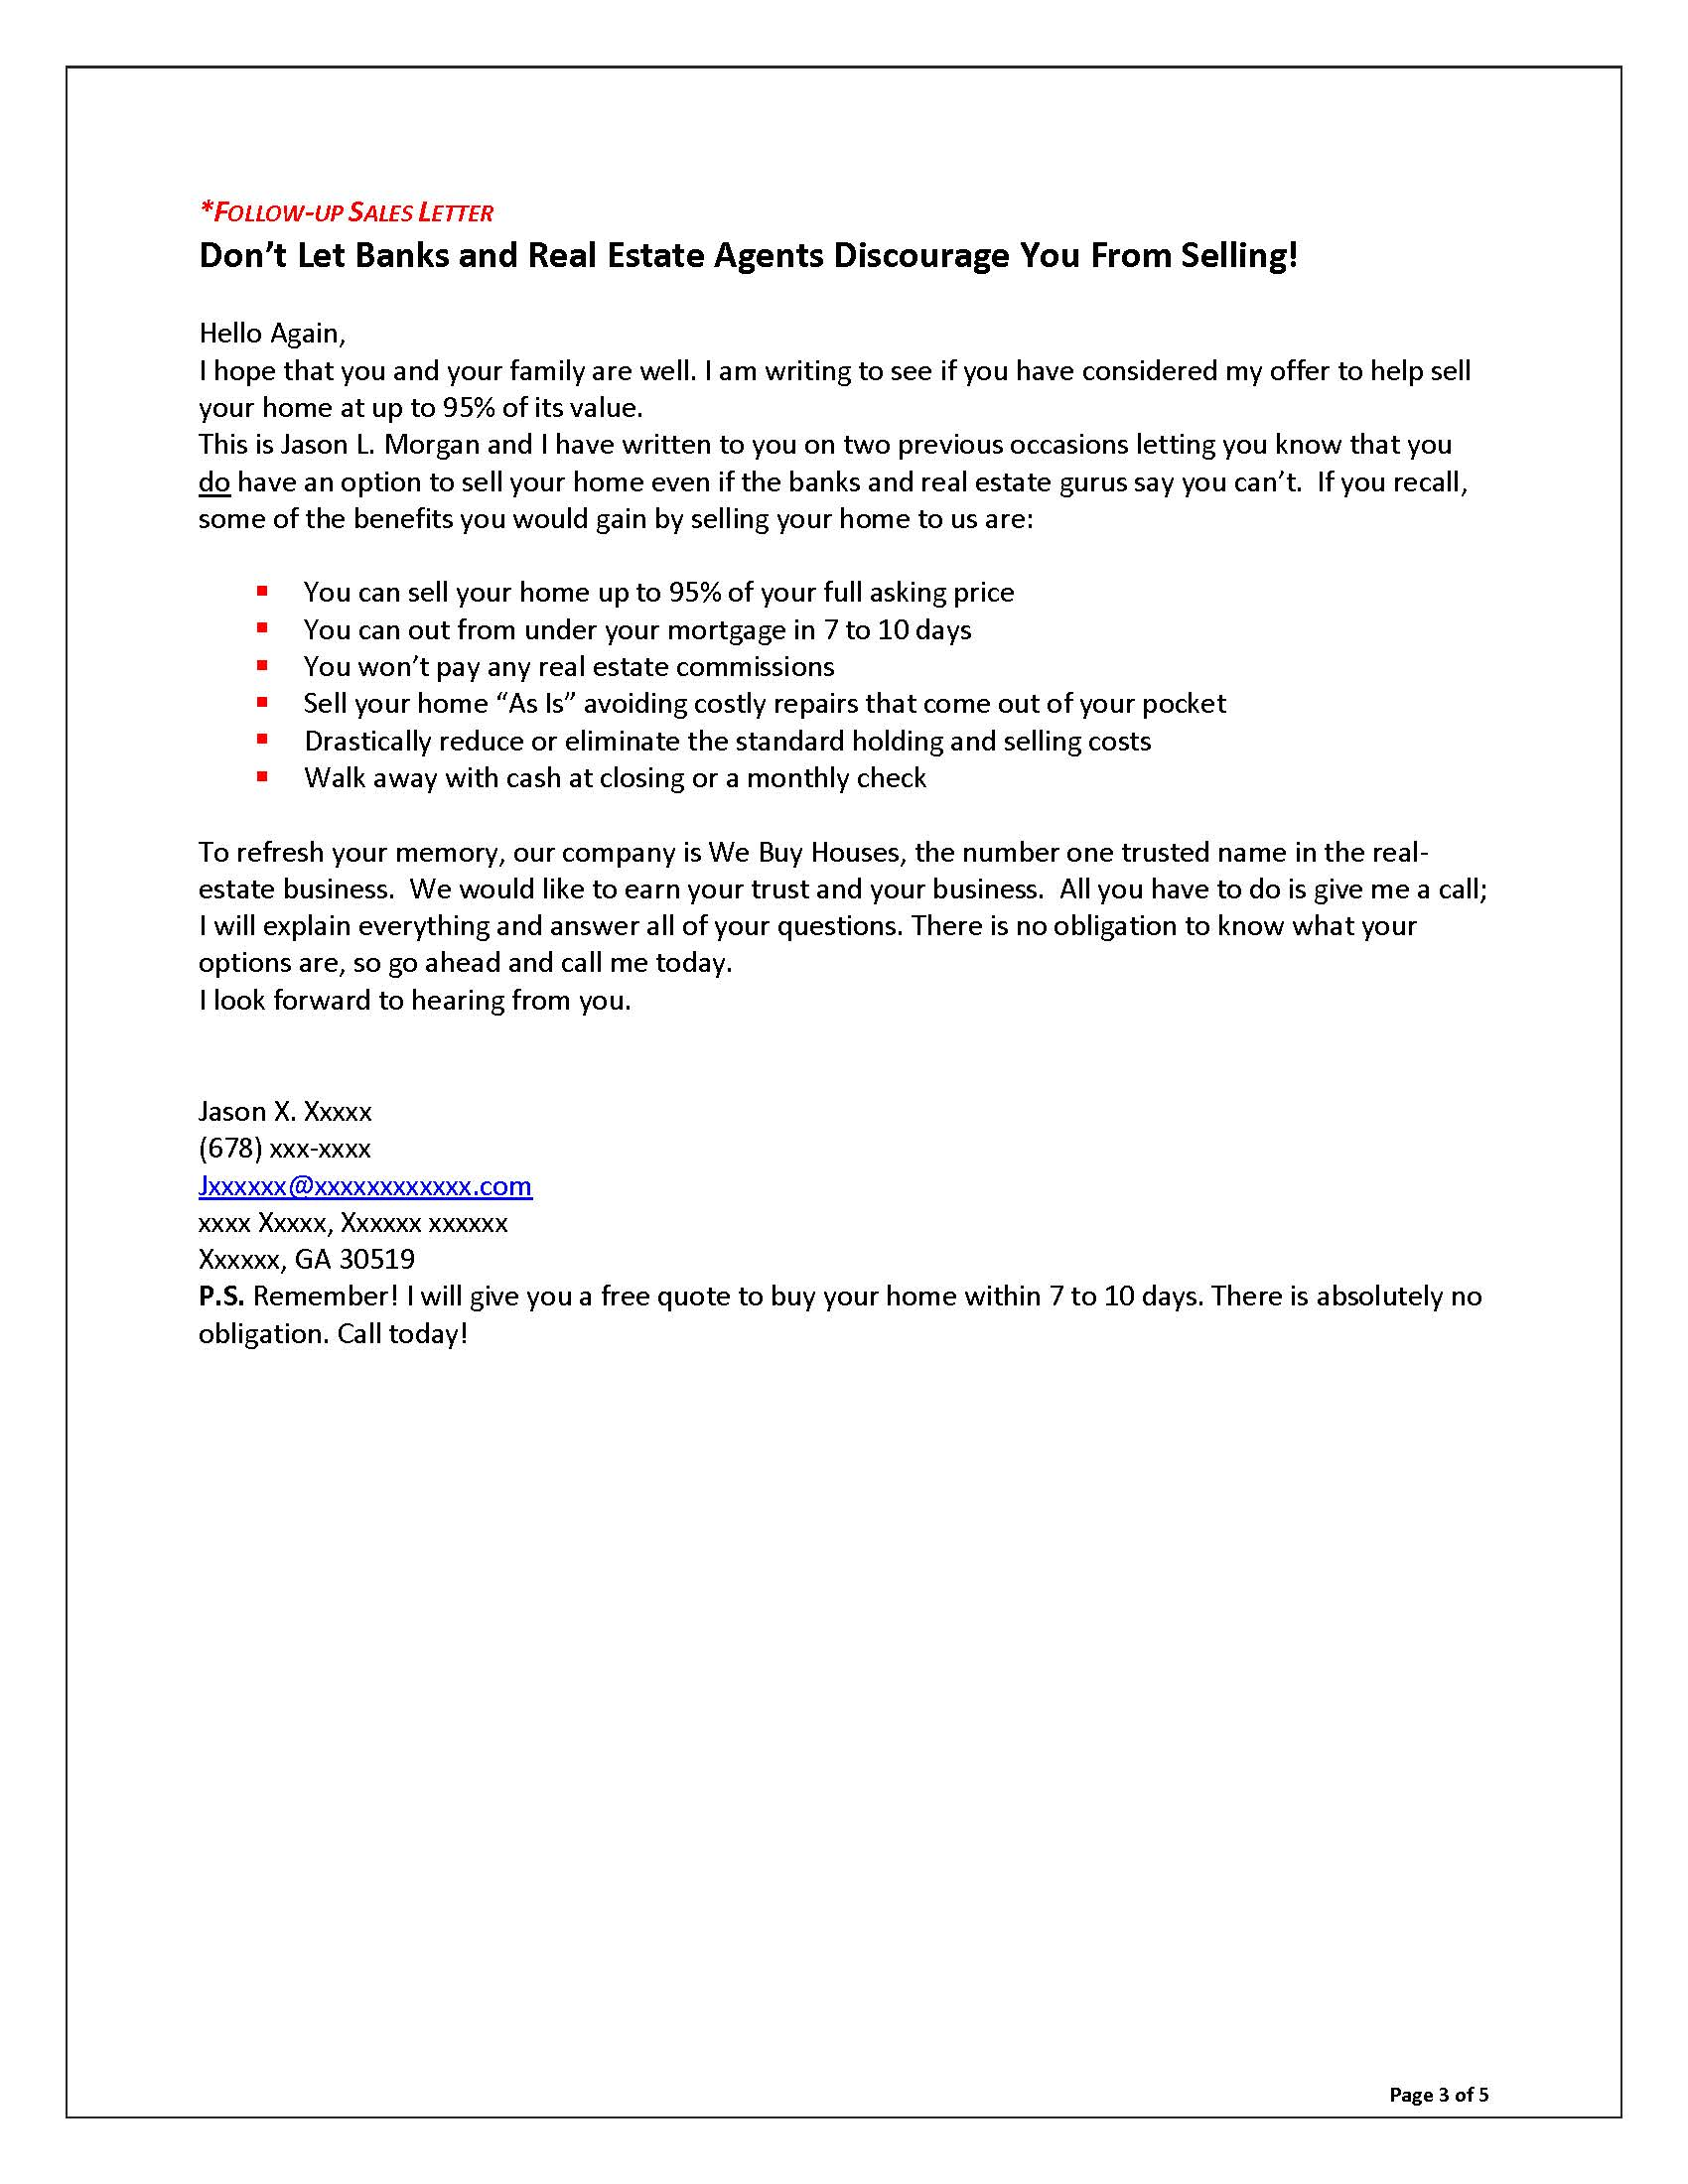 Sales Letters Grovers Copywriting – Business Sales Letter